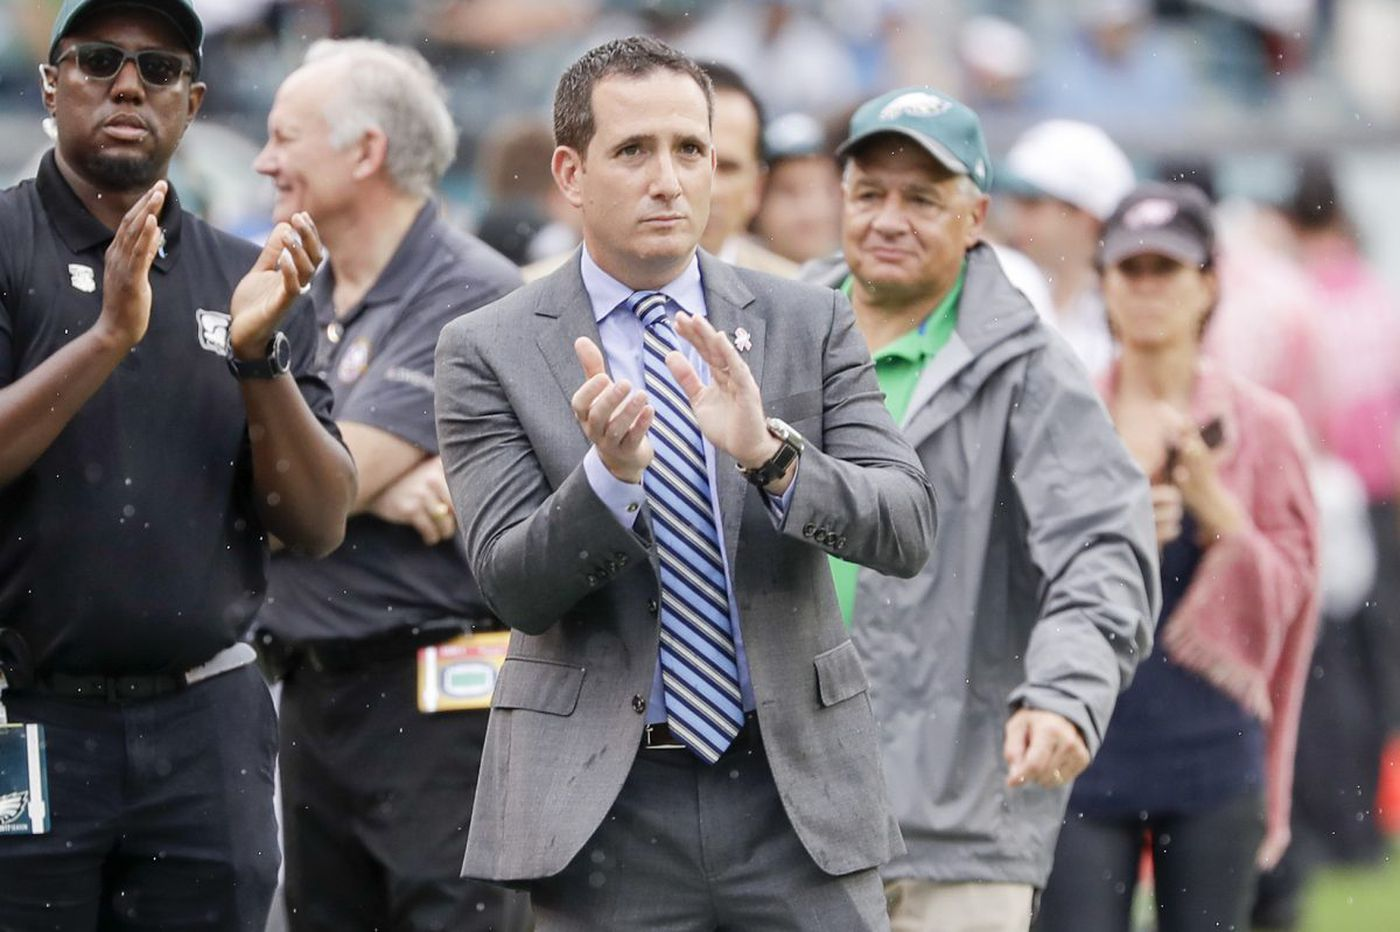 Eagles' Howie Roseman has earned the benefit of the doubt after Ajayi trade | Jeff McLane